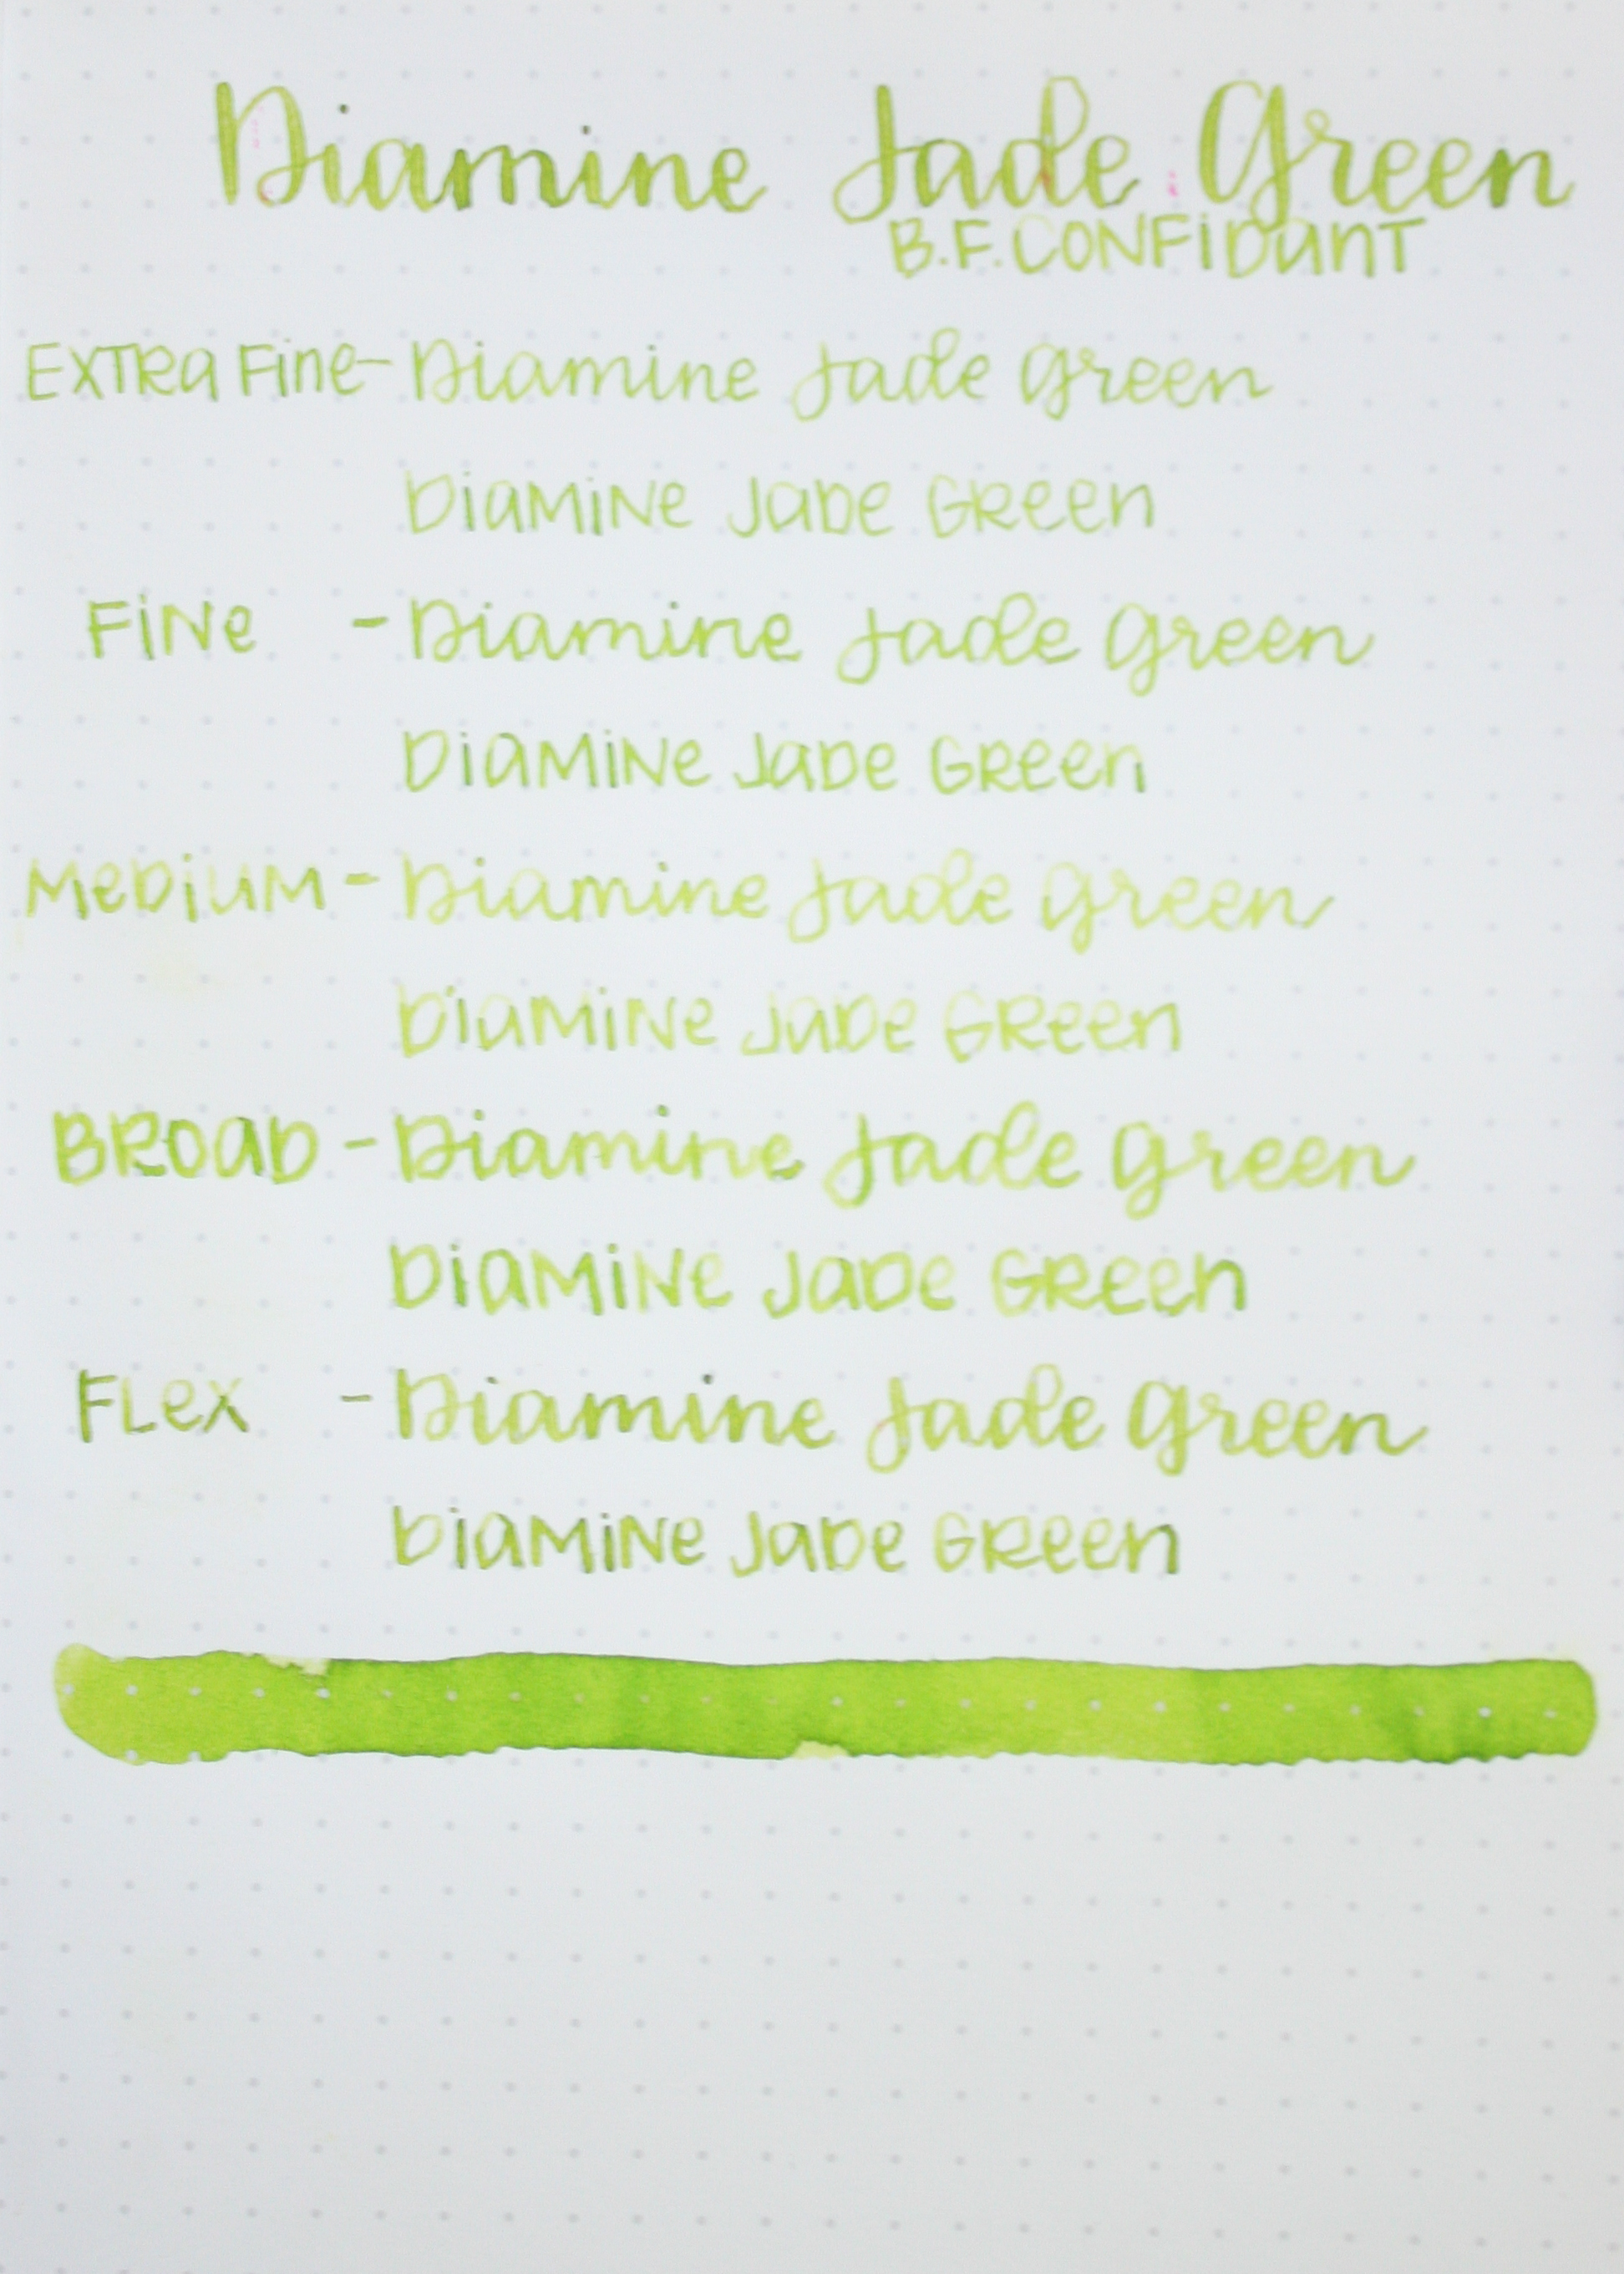 DiamineJadeGreen-026.jpg